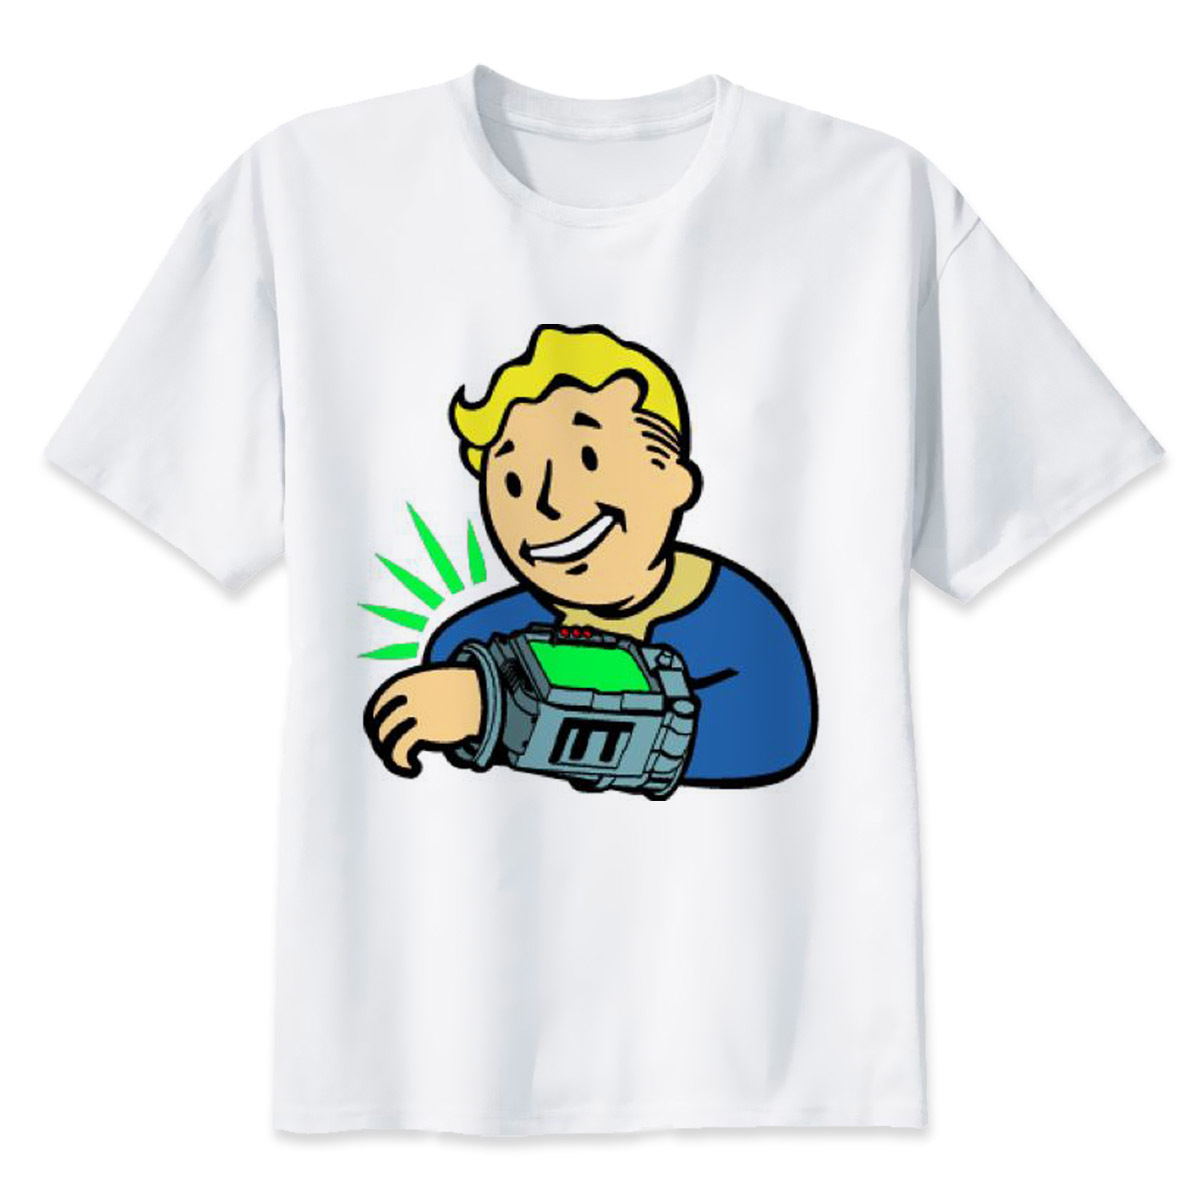 pip boy t shirt Men Print T-Shirts Fashion Print T-Shirts Short ...